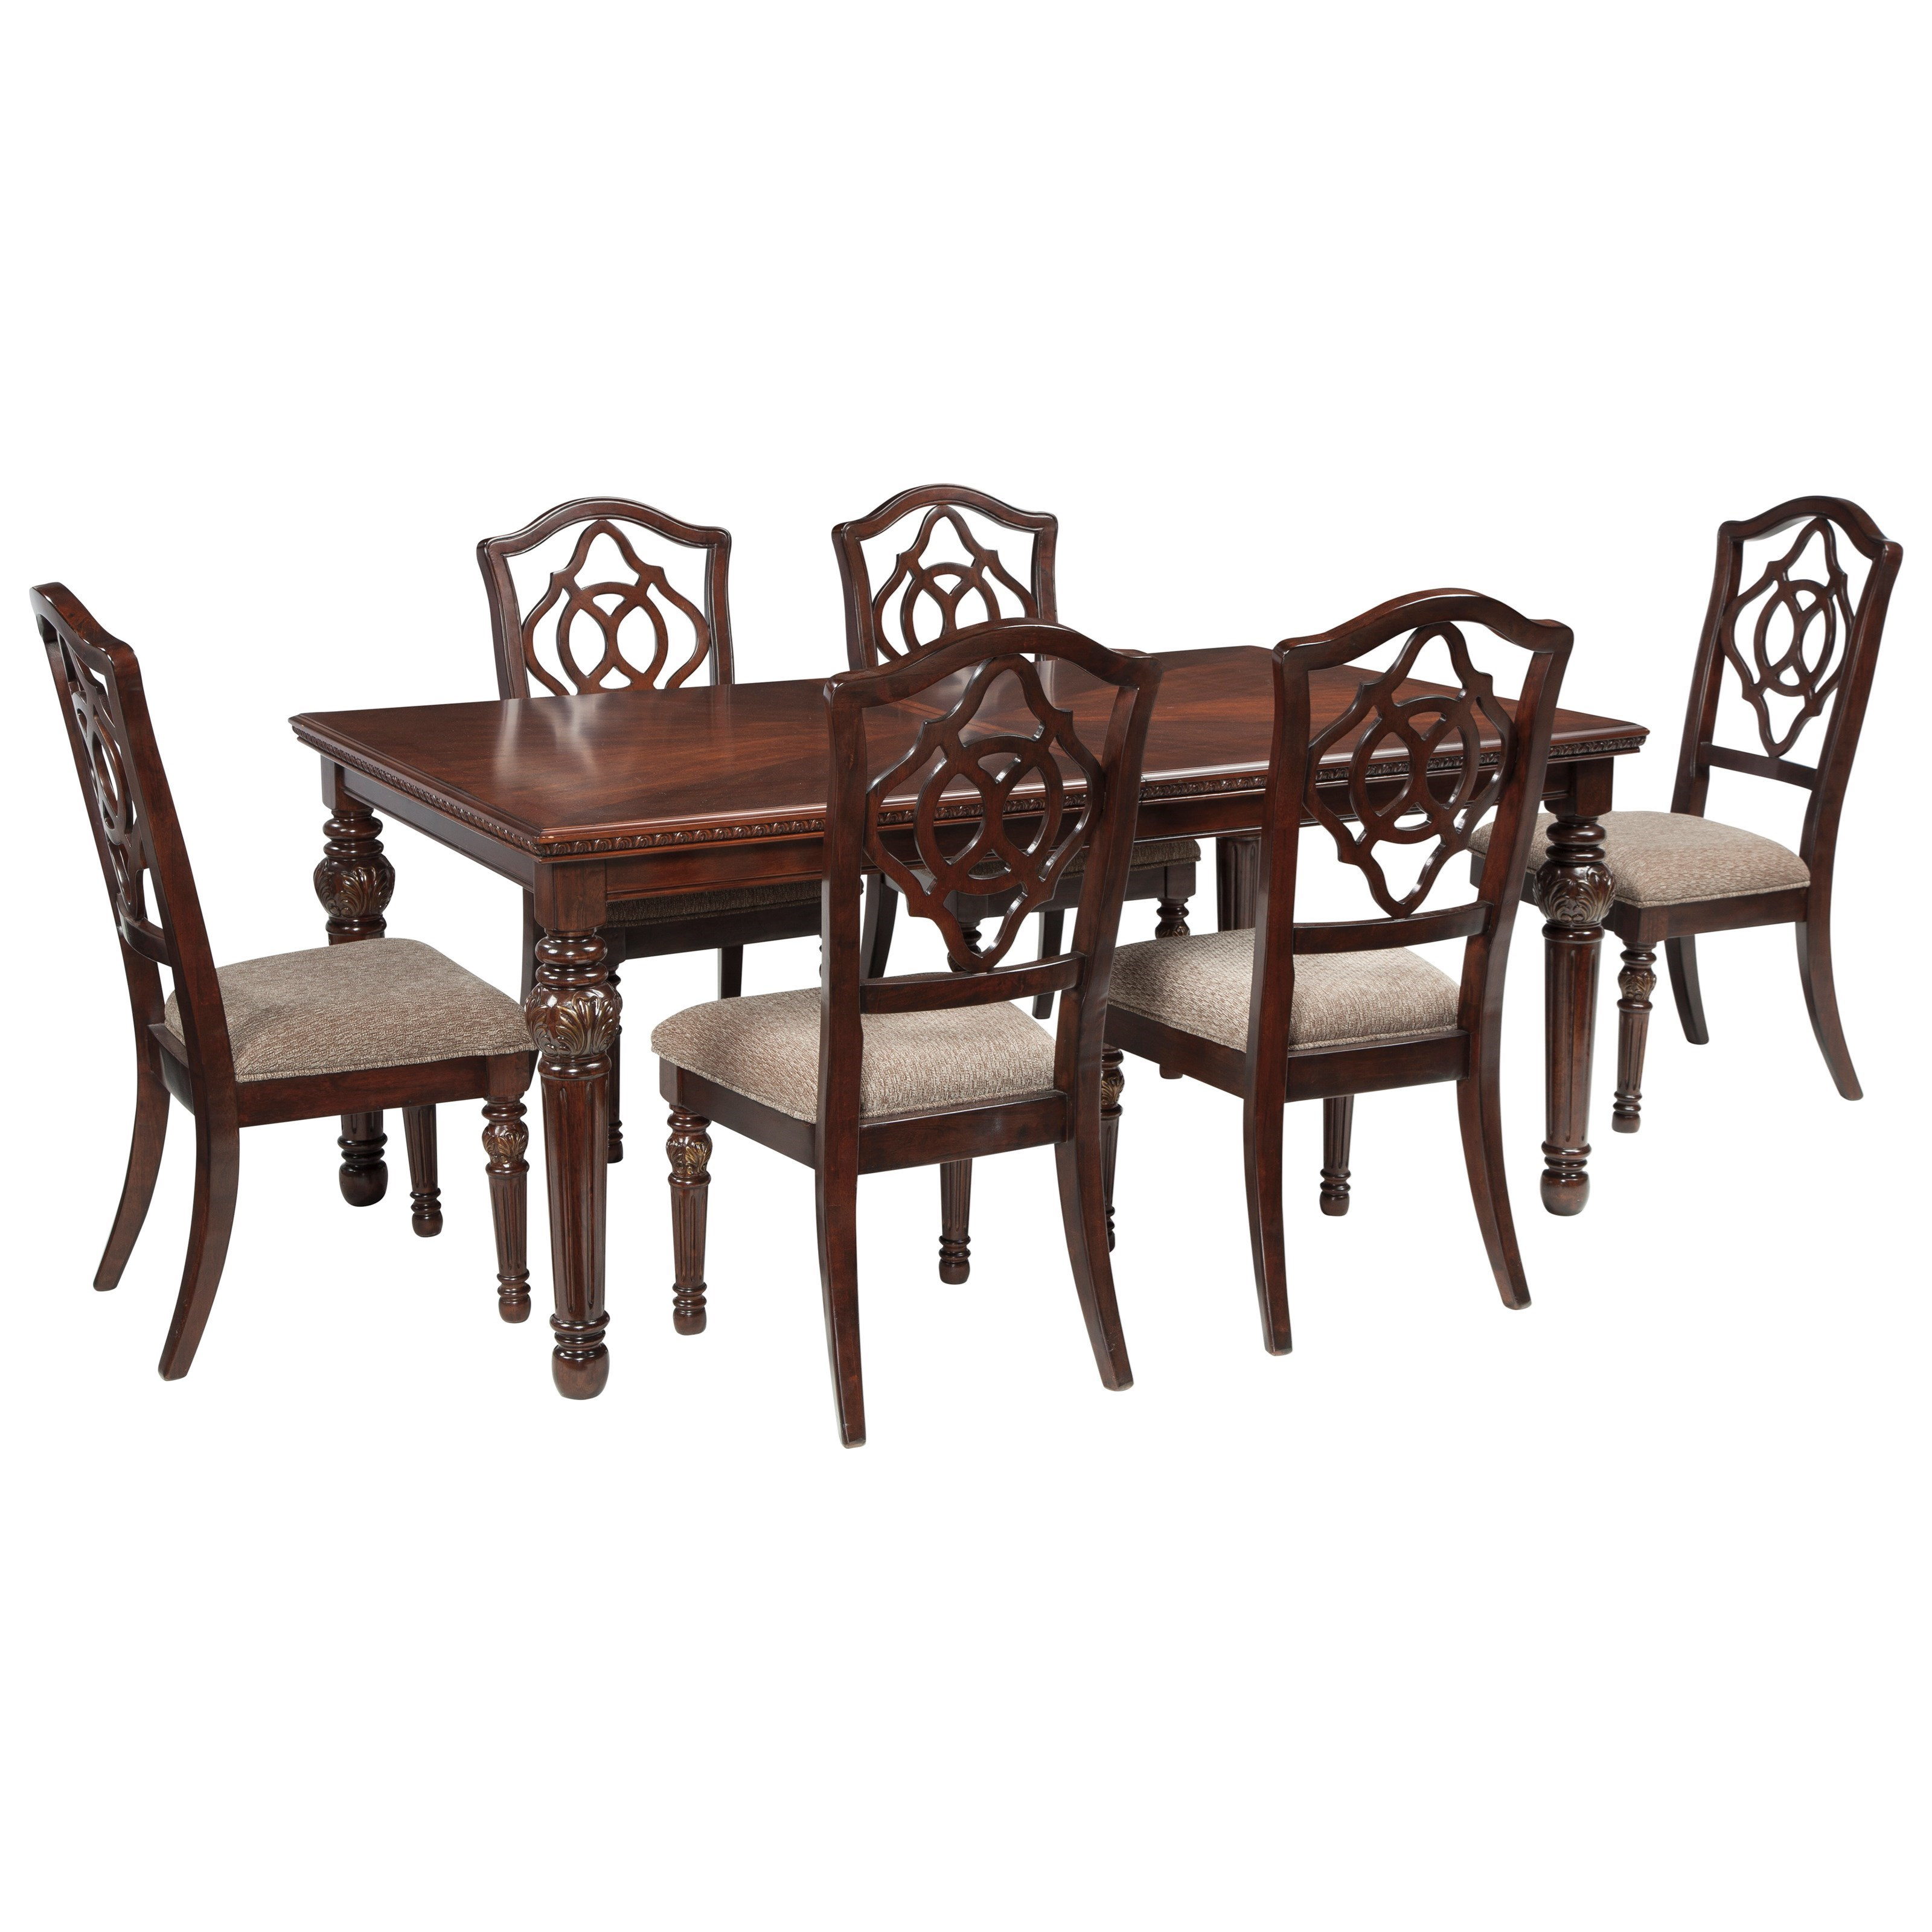 Signature Design by Ashley Leahlyn 7-Piece Rectangular Dining Table Set - Item Number: D626-35+6x01